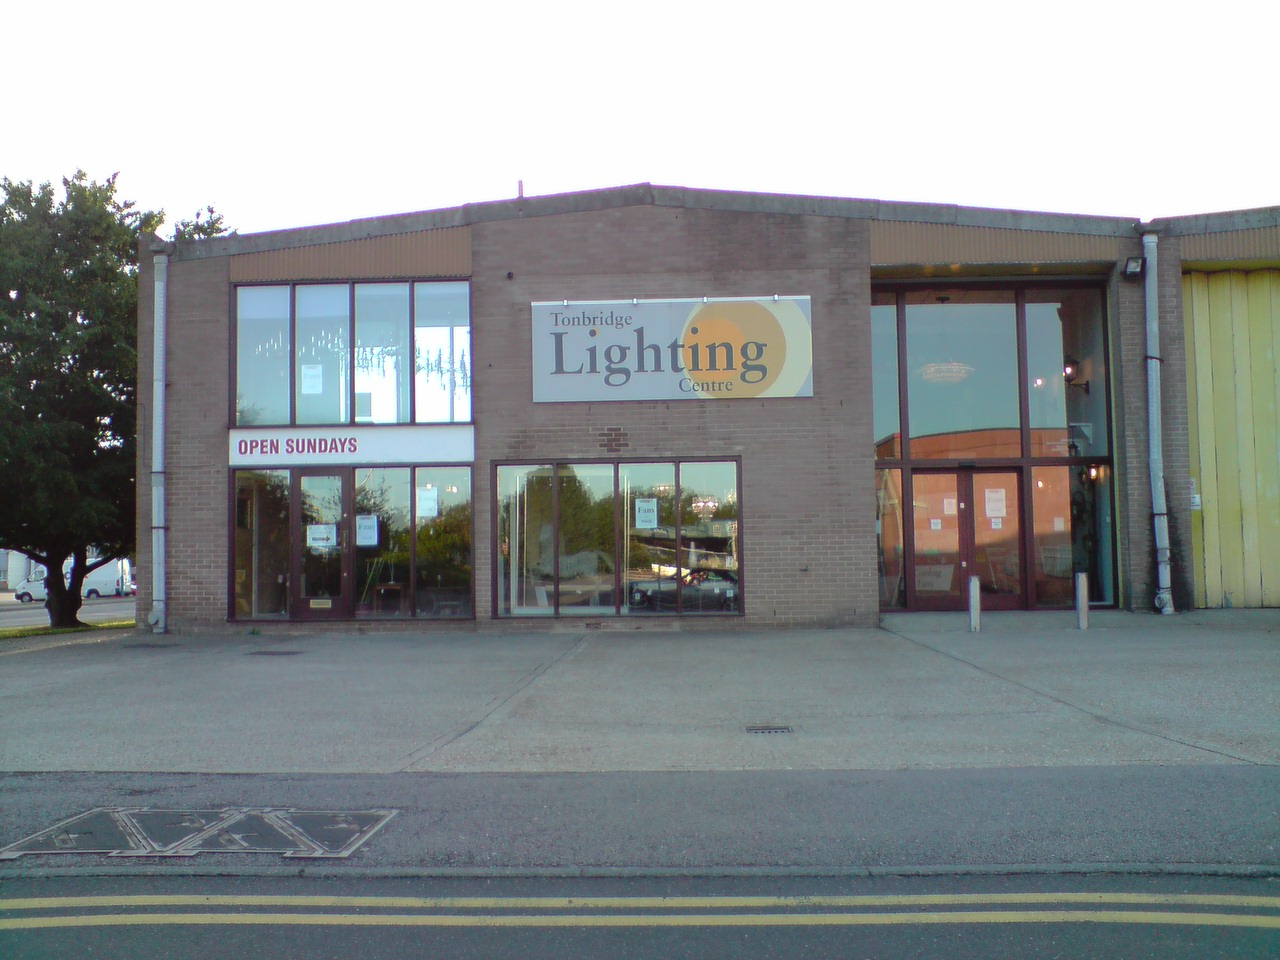 Tonbridge Lighting Centre